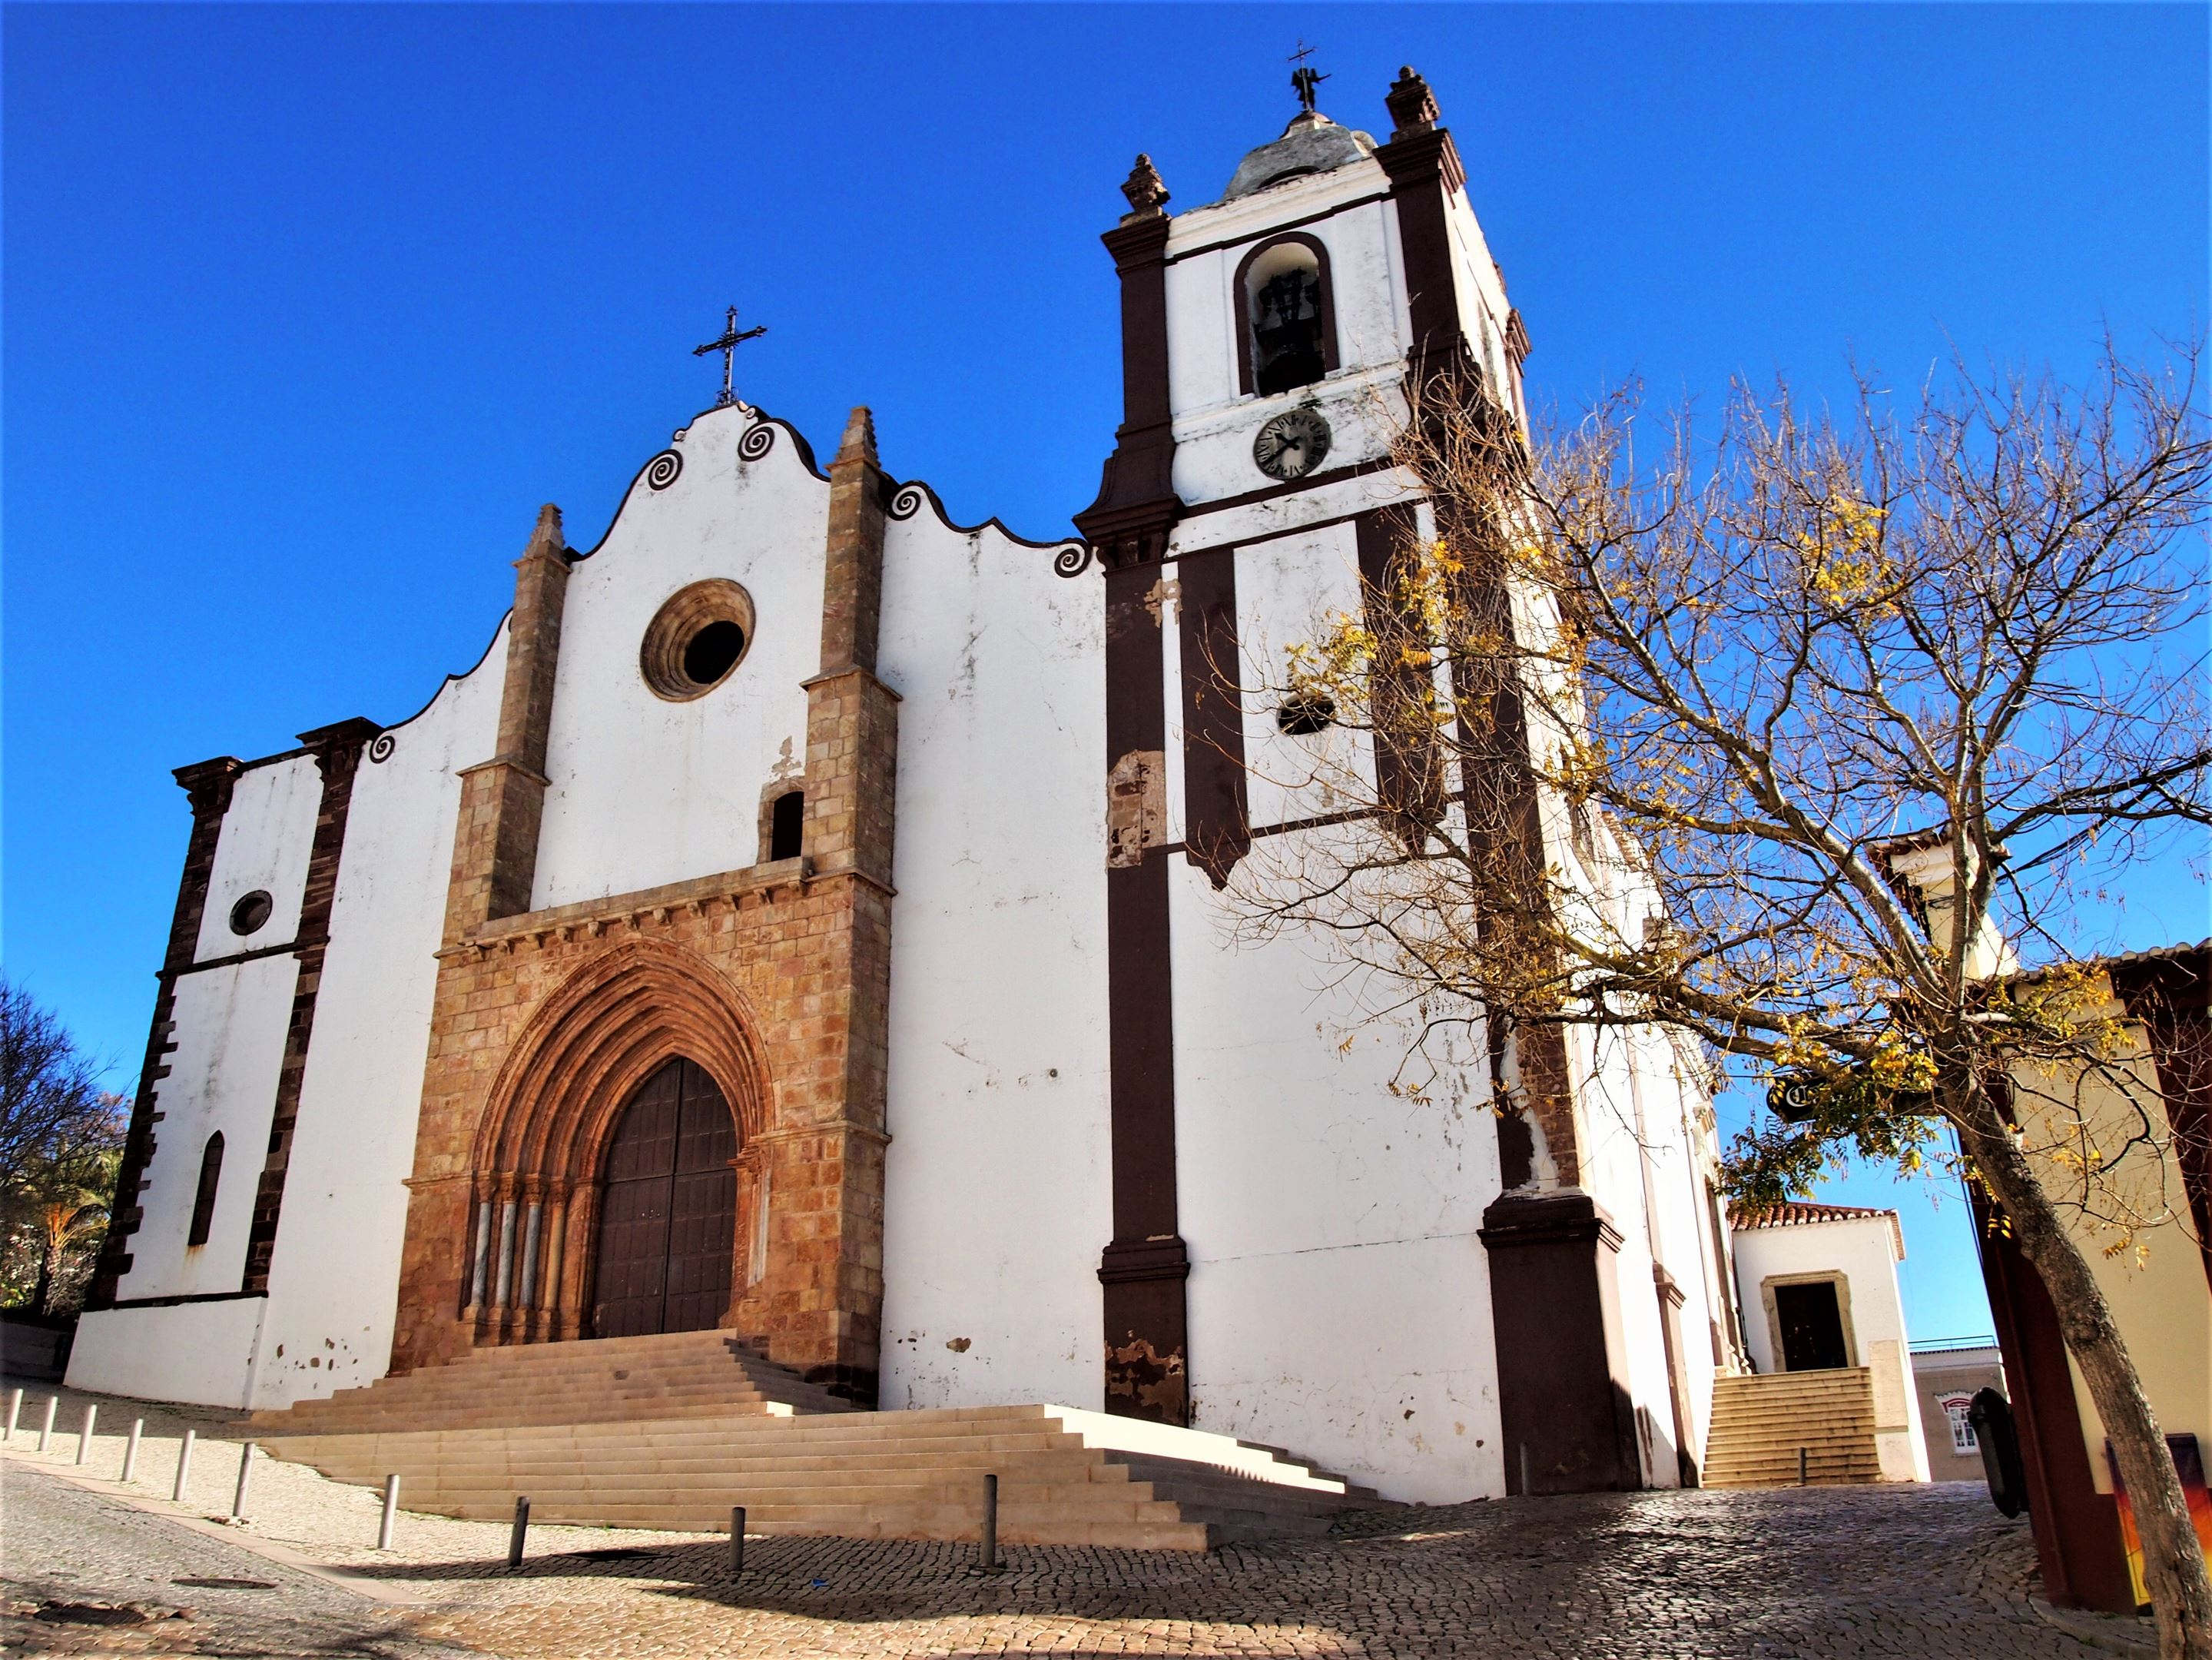 Entrance to Silves Cathedral, Algarve